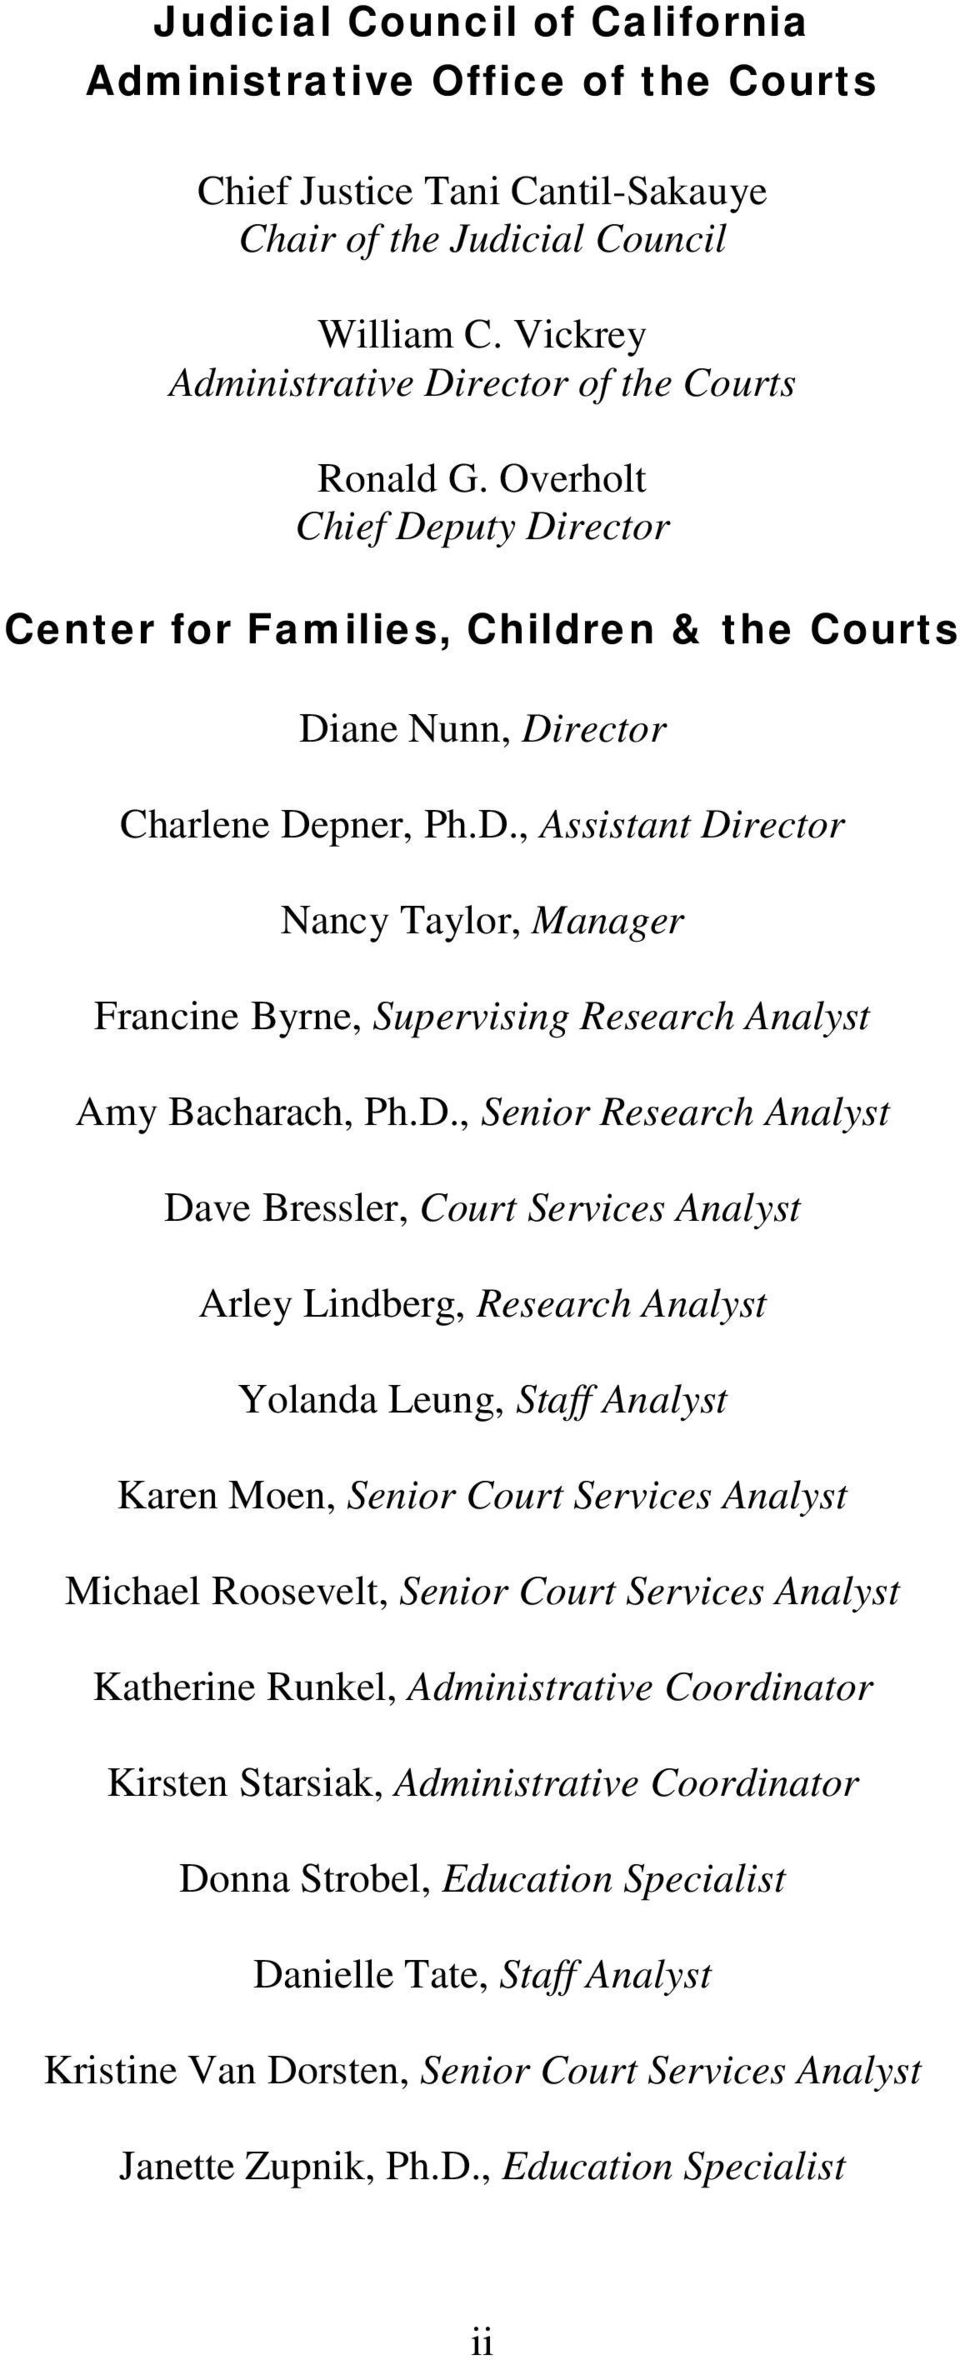 D., Senior Research Analyst Dave Bressler, Court Services Analyst Arley Lindberg, Research Analyst Yolanda Leung, Staff Analyst Karen Moen, Senior Court Services Analyst Michael Roosevelt, Senior